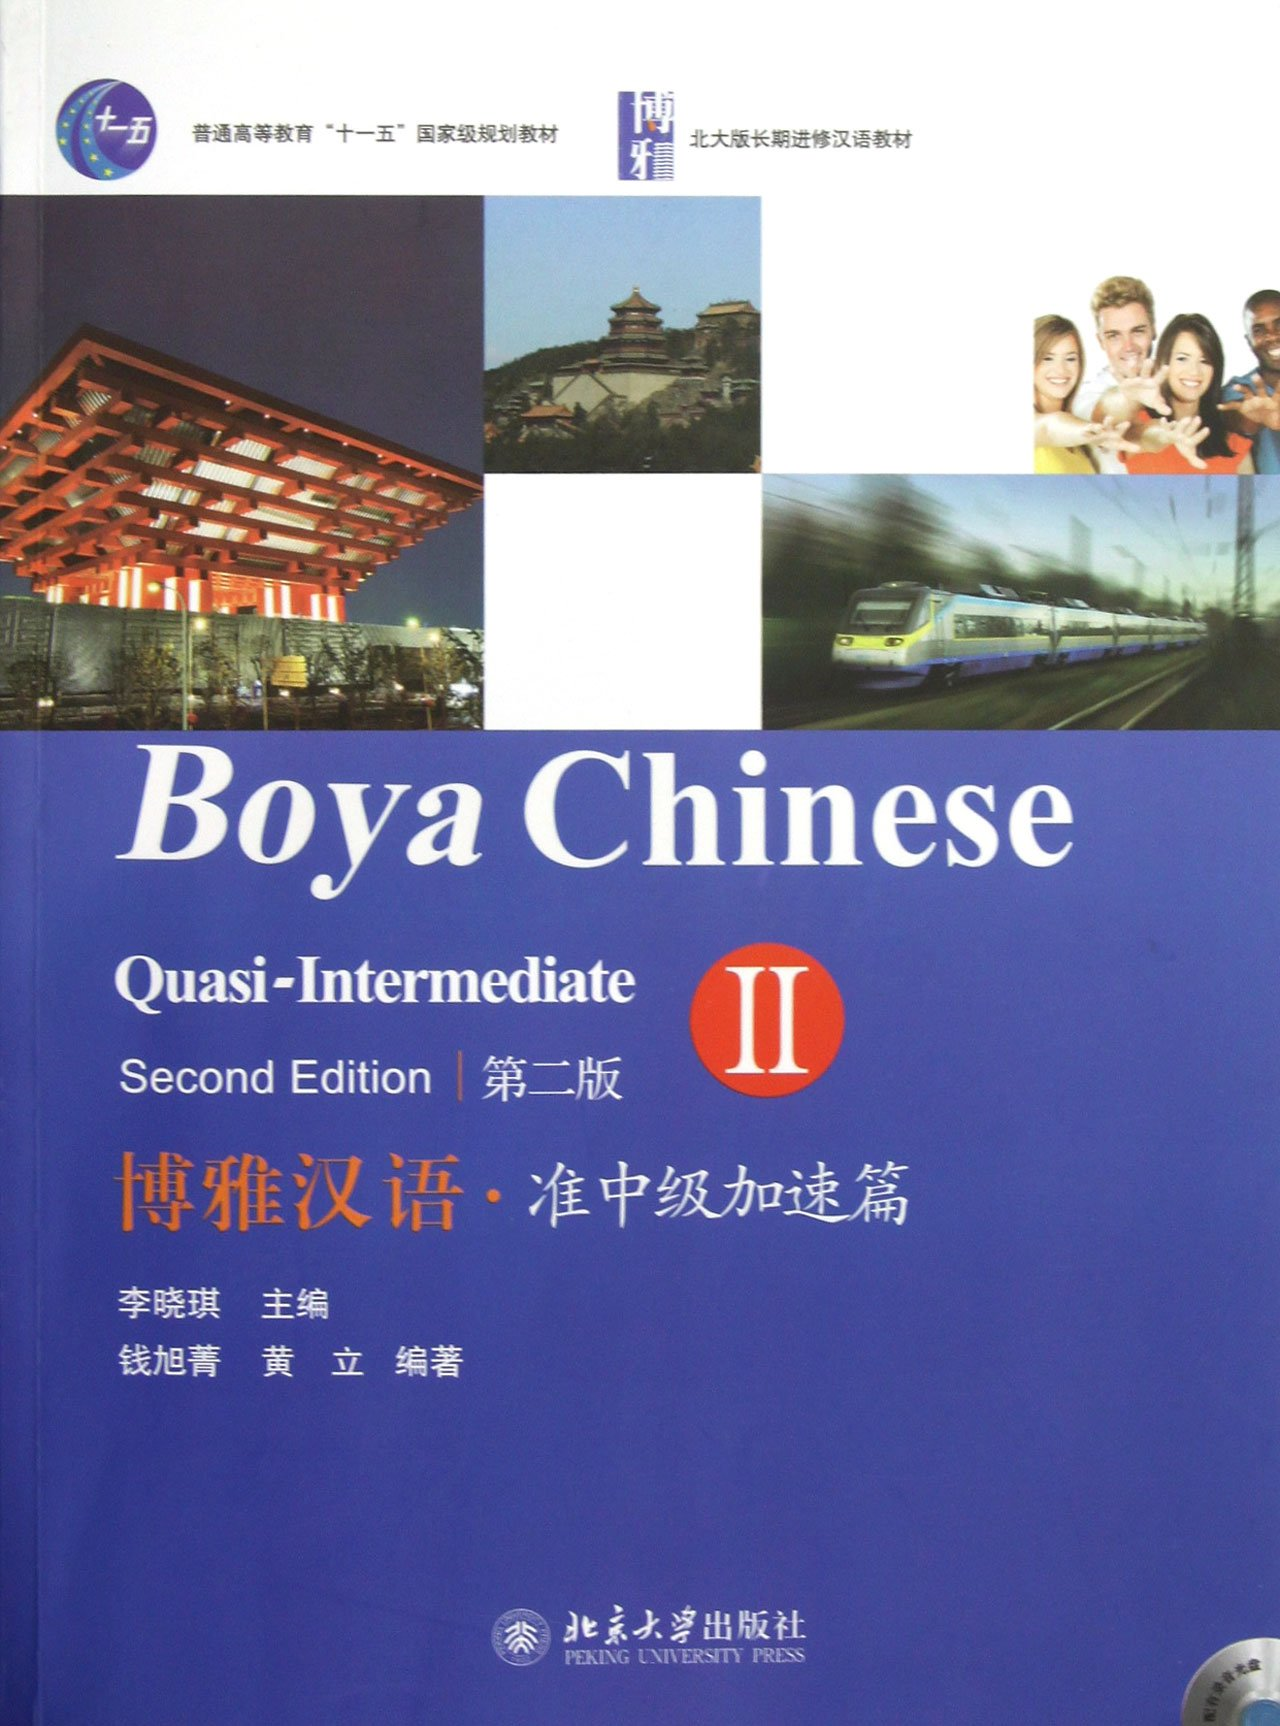 Boya Chinese: Quasi-Intermediate 2 (2nd Ed.) (w/MP3) By Li Xiao Qi (Author)